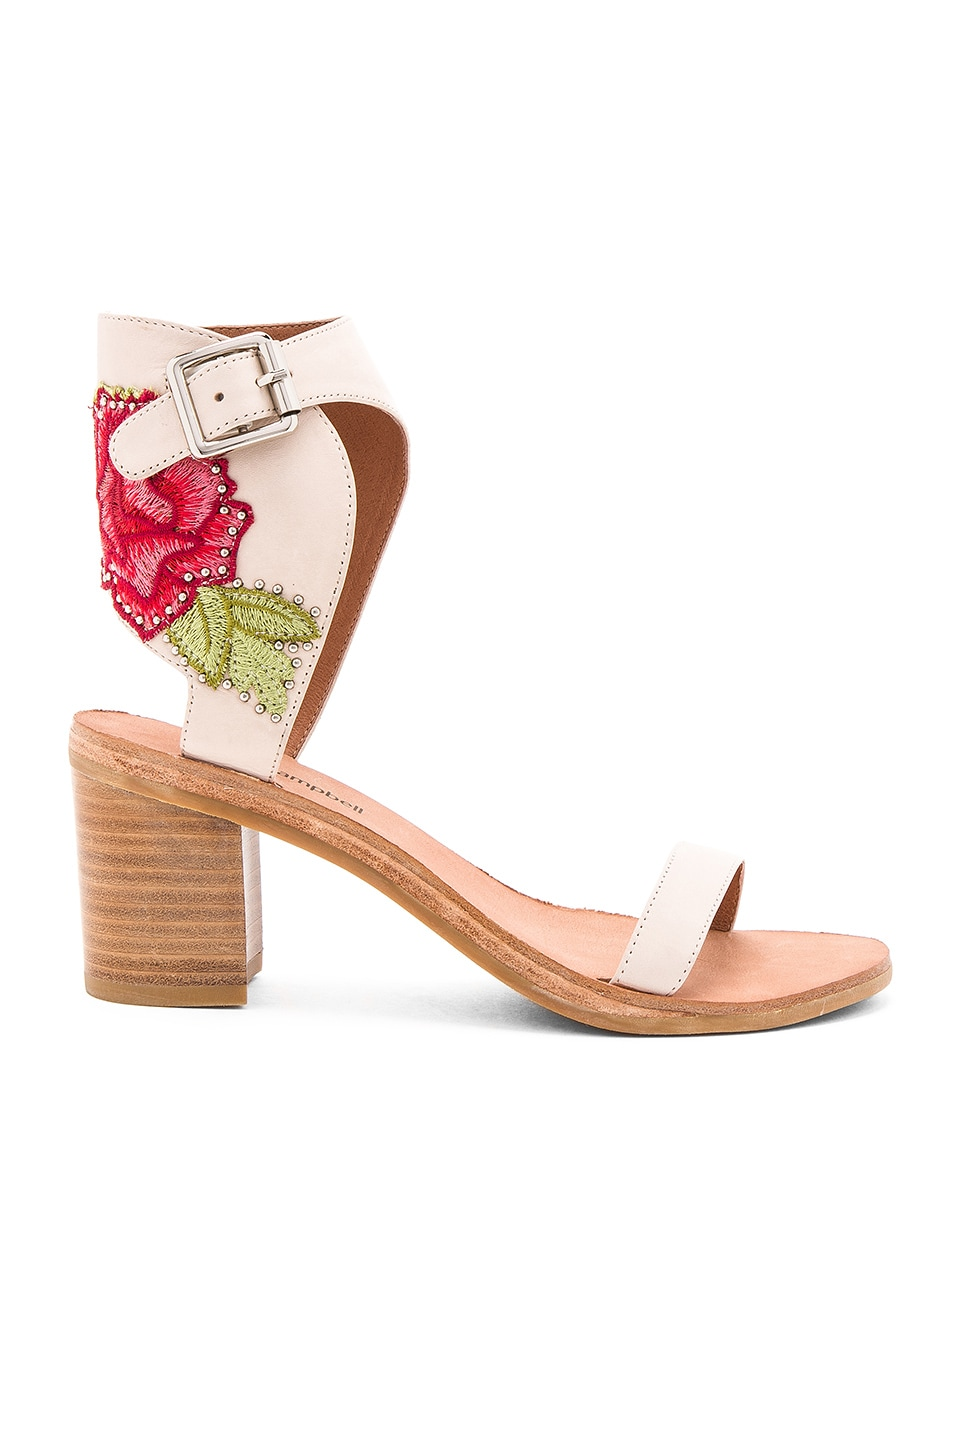 Jeffrey Campbell Iowa REV Sandals in Natural Red Combo